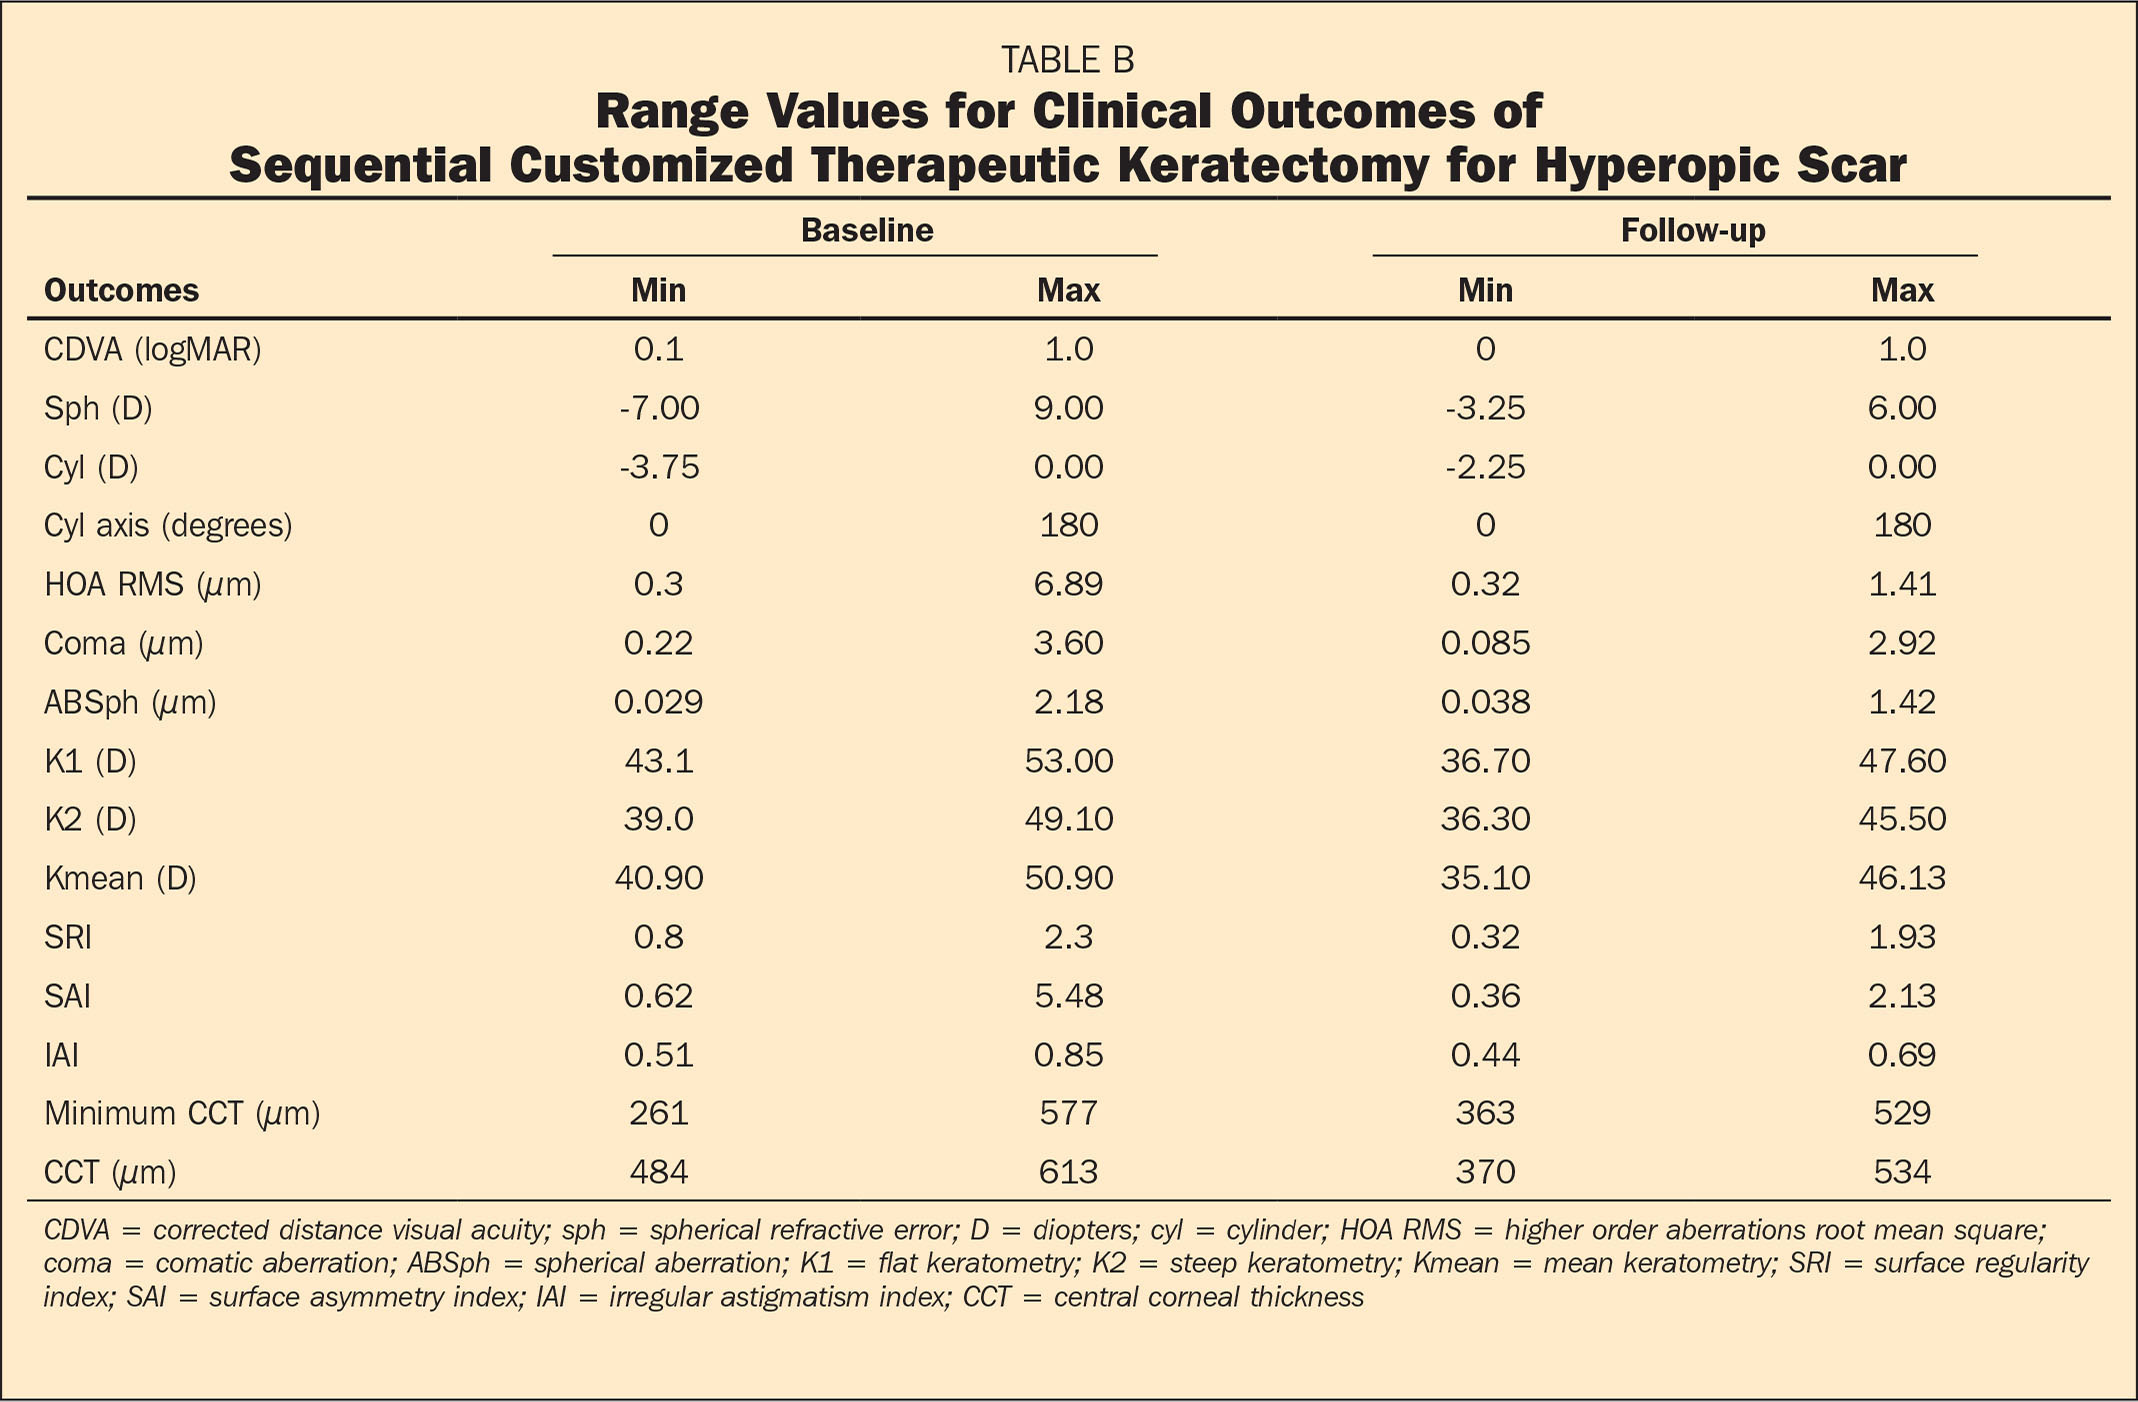 Range Values for Clinical Outcomes of Sequential Customized Therapeutic Keratectomy for Hyperopic Scar